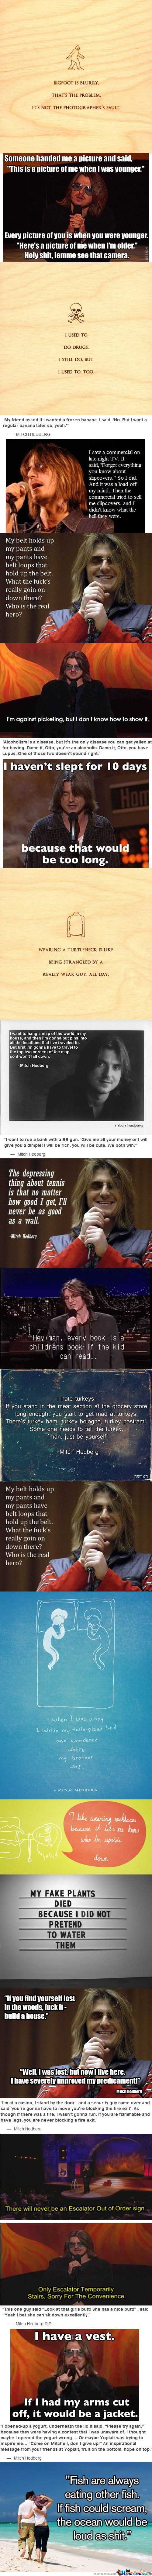 Aw Mitch Hedberg RIP you talented hilarious man